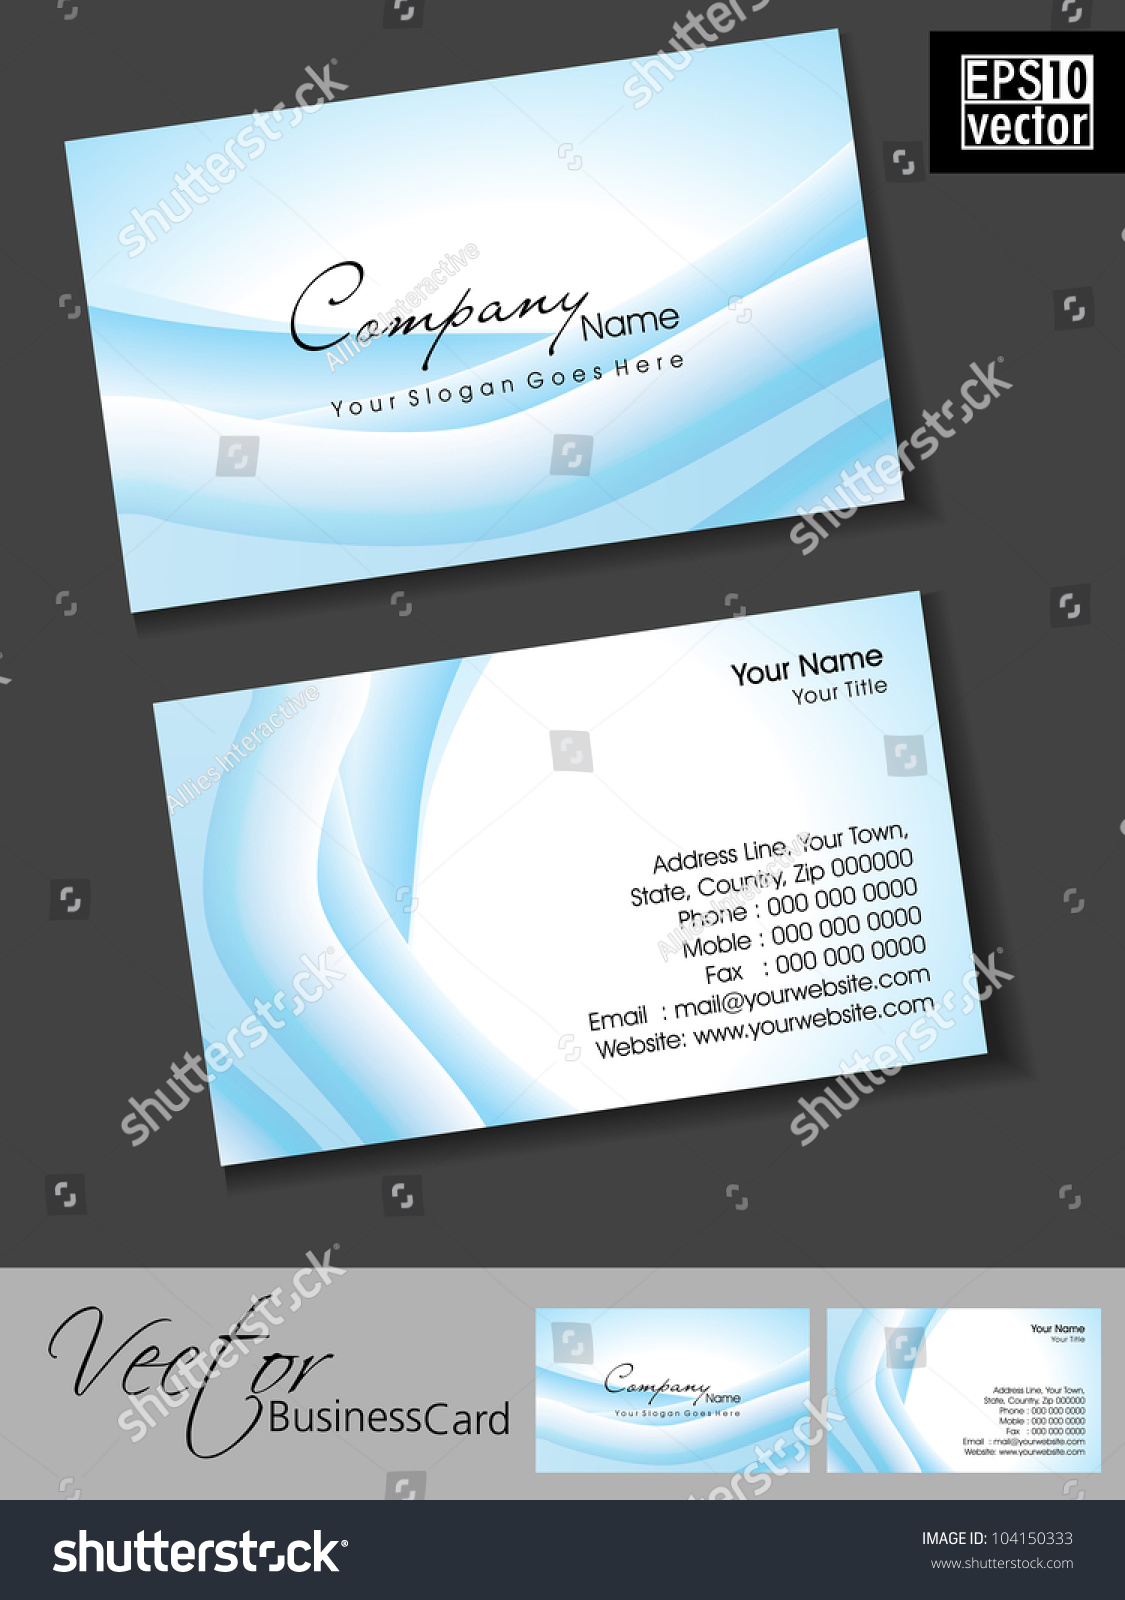 Abstract professional designer business card template stock vector abstract professional and designer business card template or visiting card set with blue waves effect pronofoot35fo Choice Image